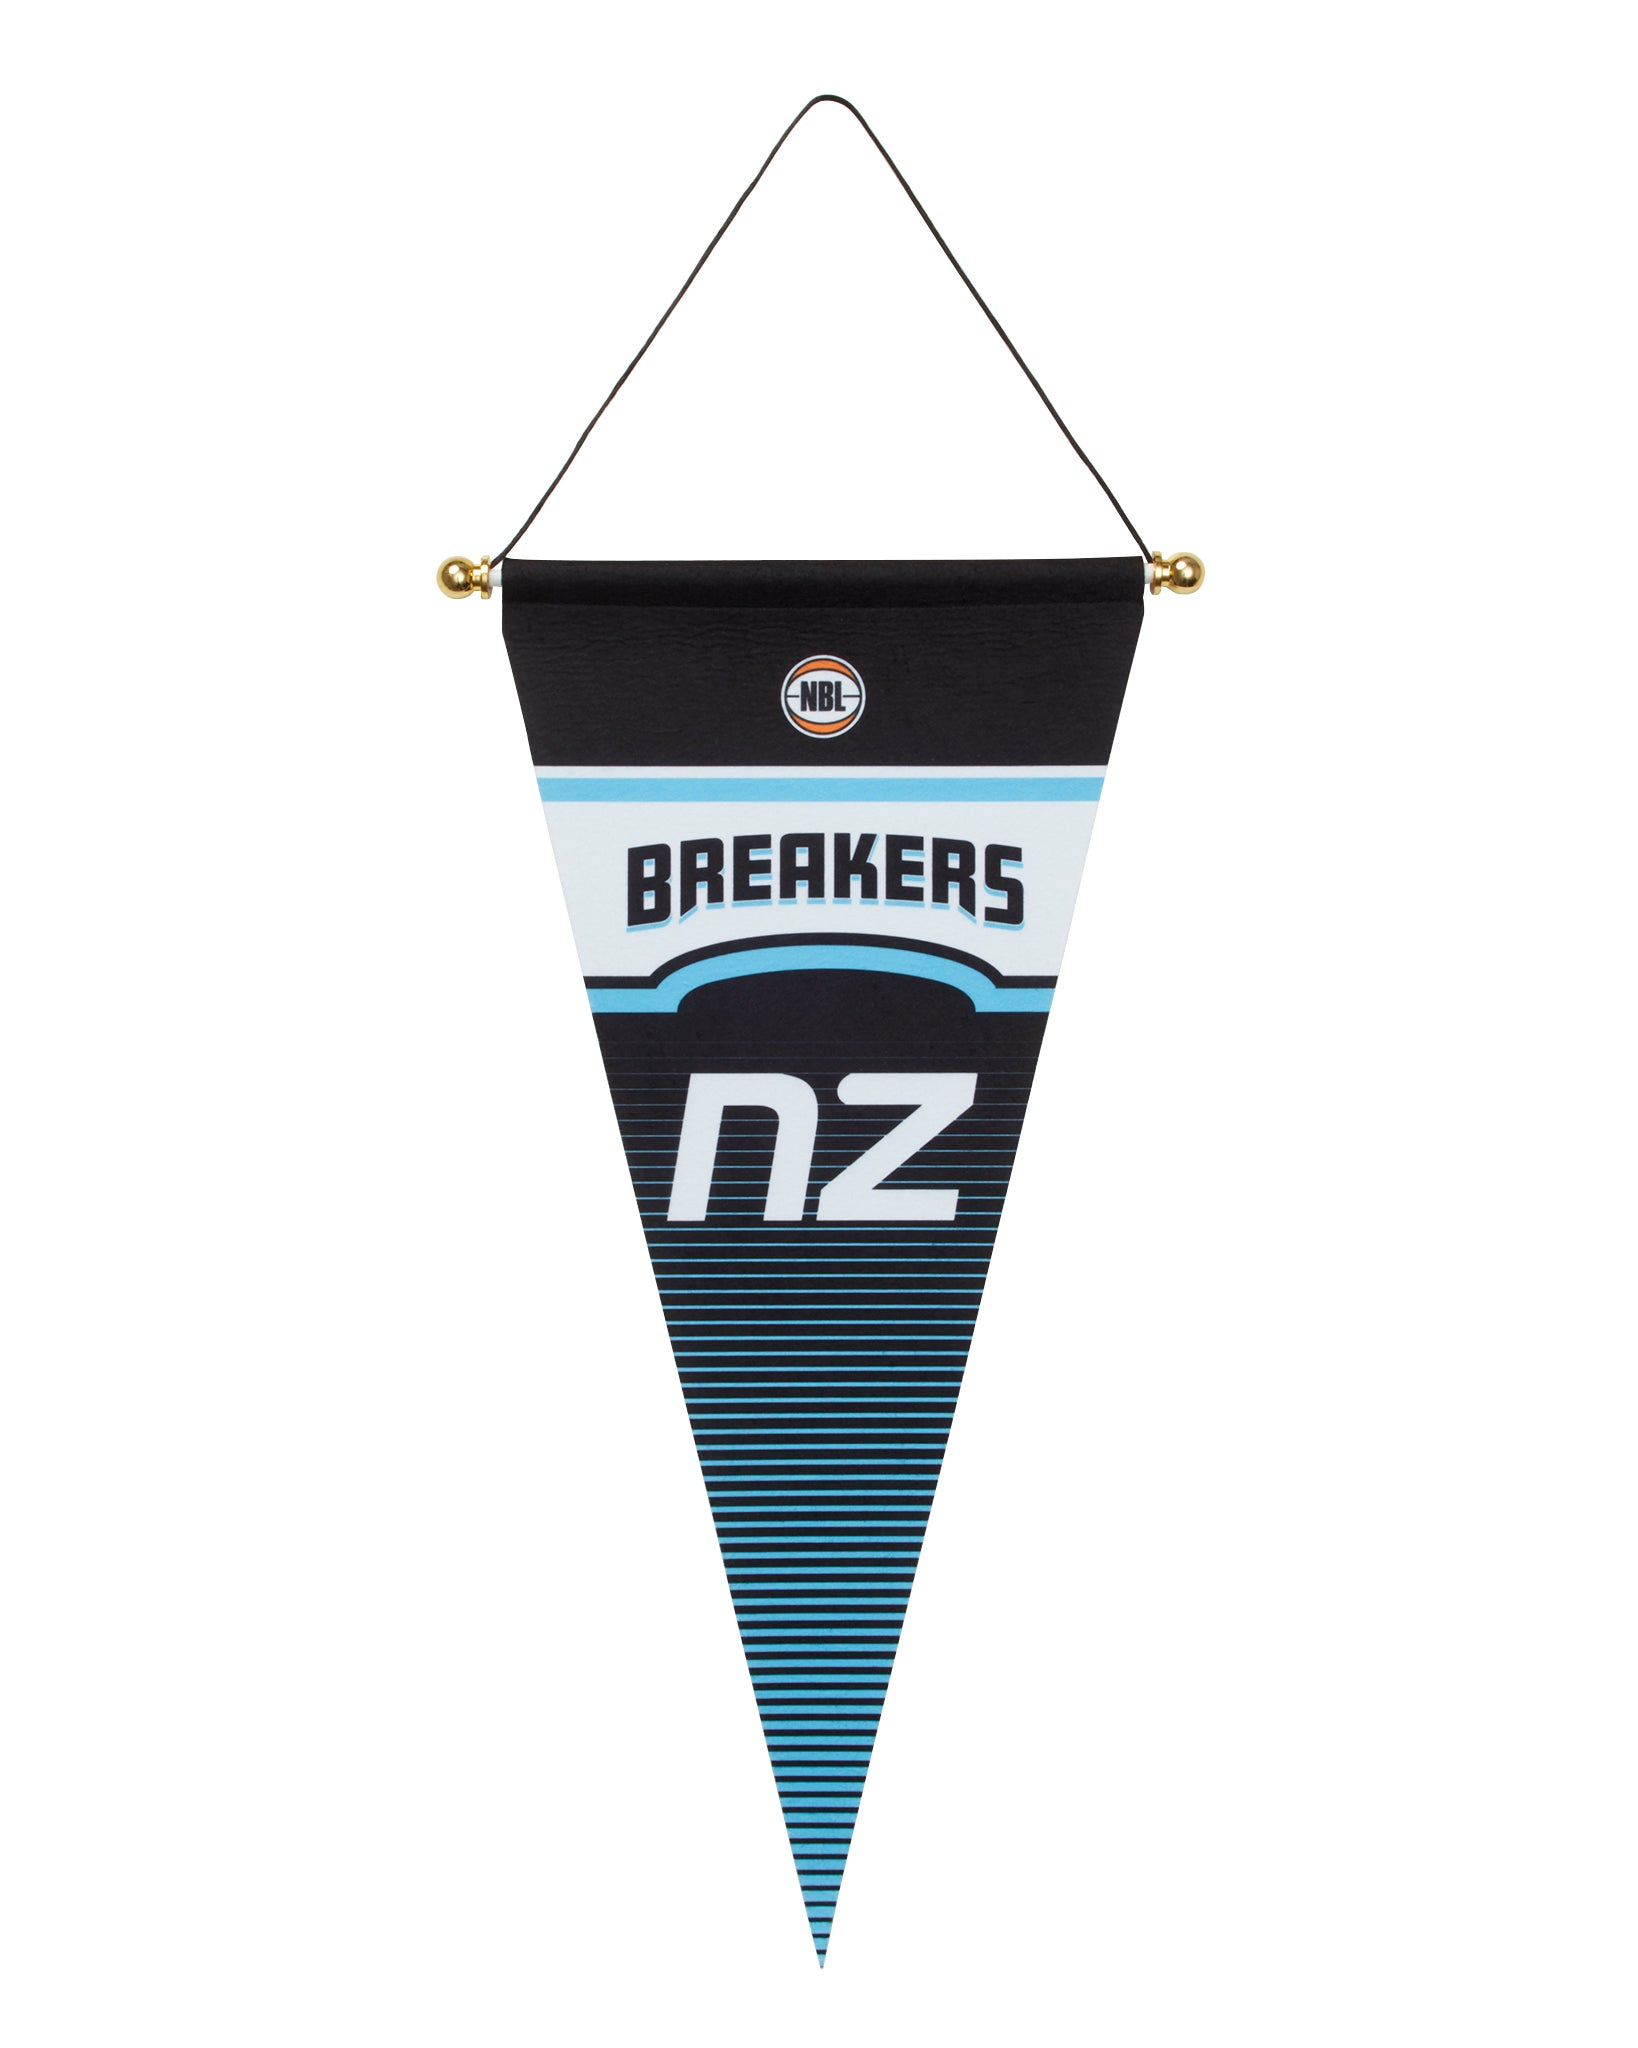 New Zealand Breakers 19/20 Official NBL Club Pennant